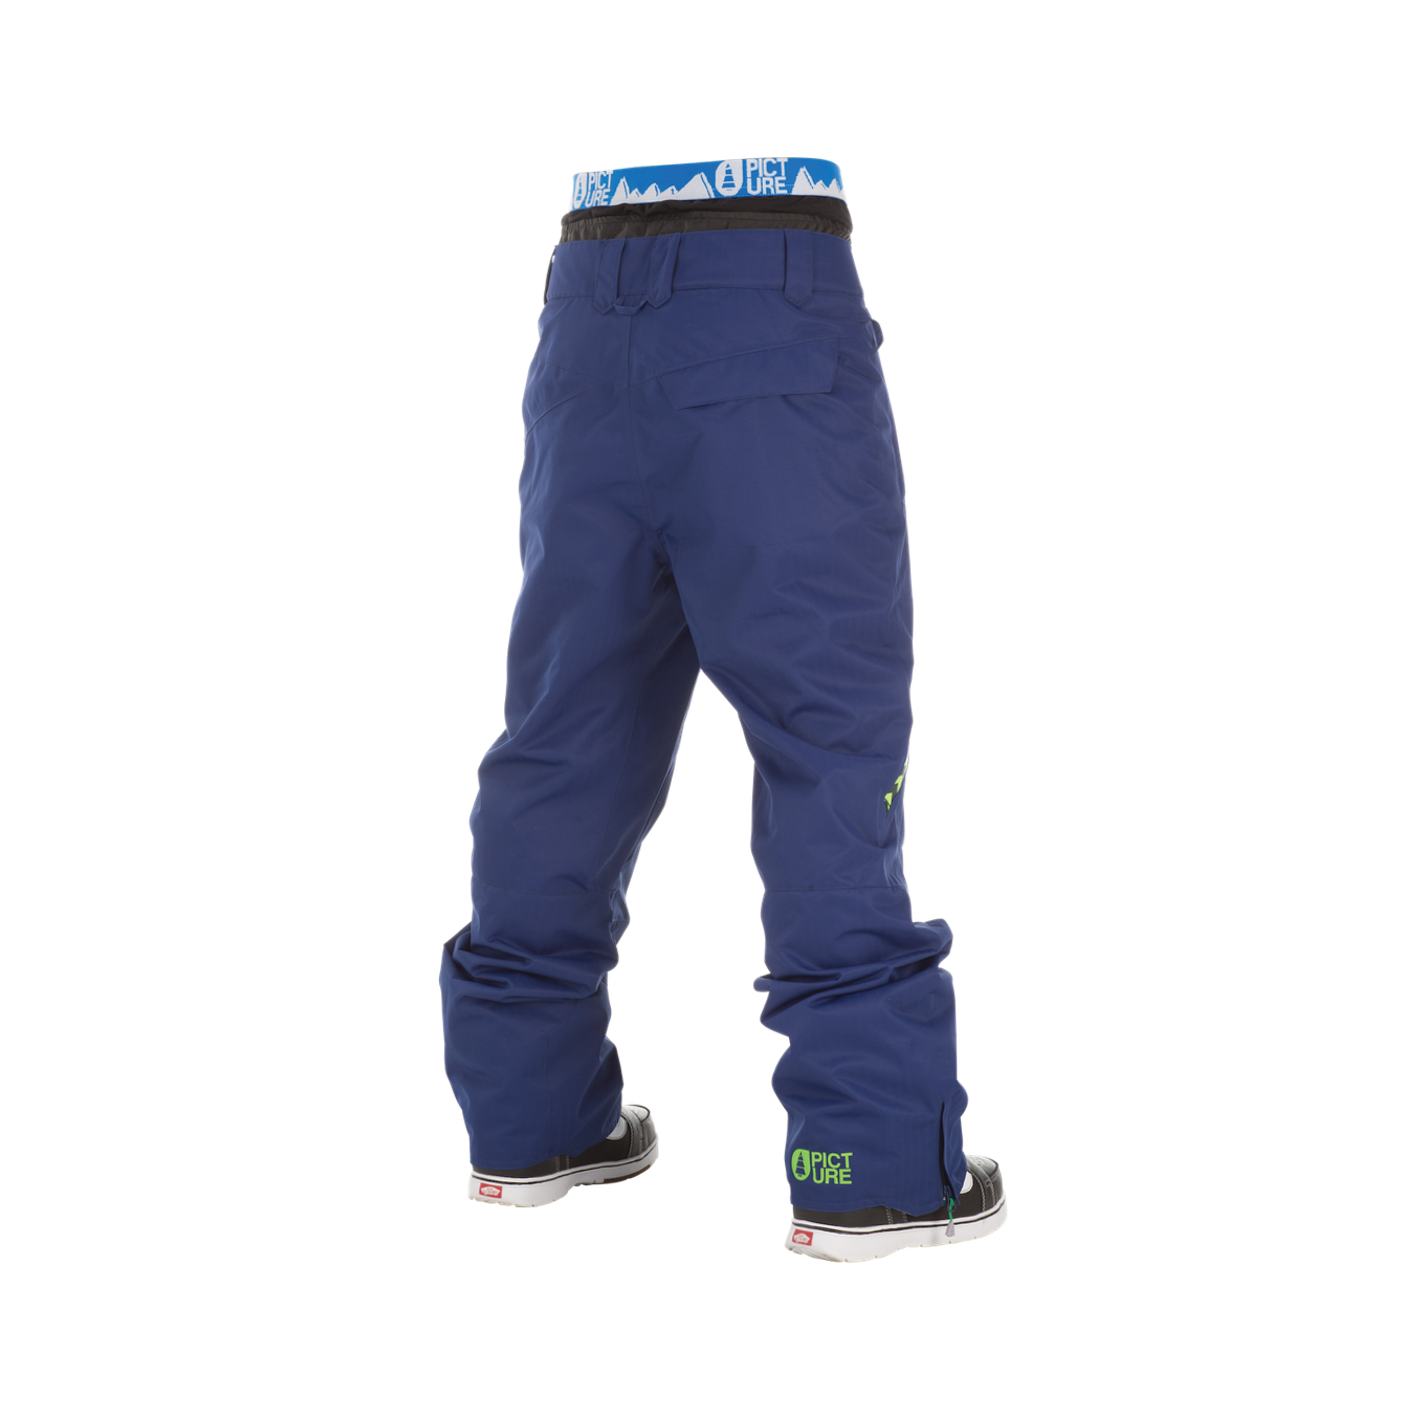 Pants transparent ski. Buy the picture organic